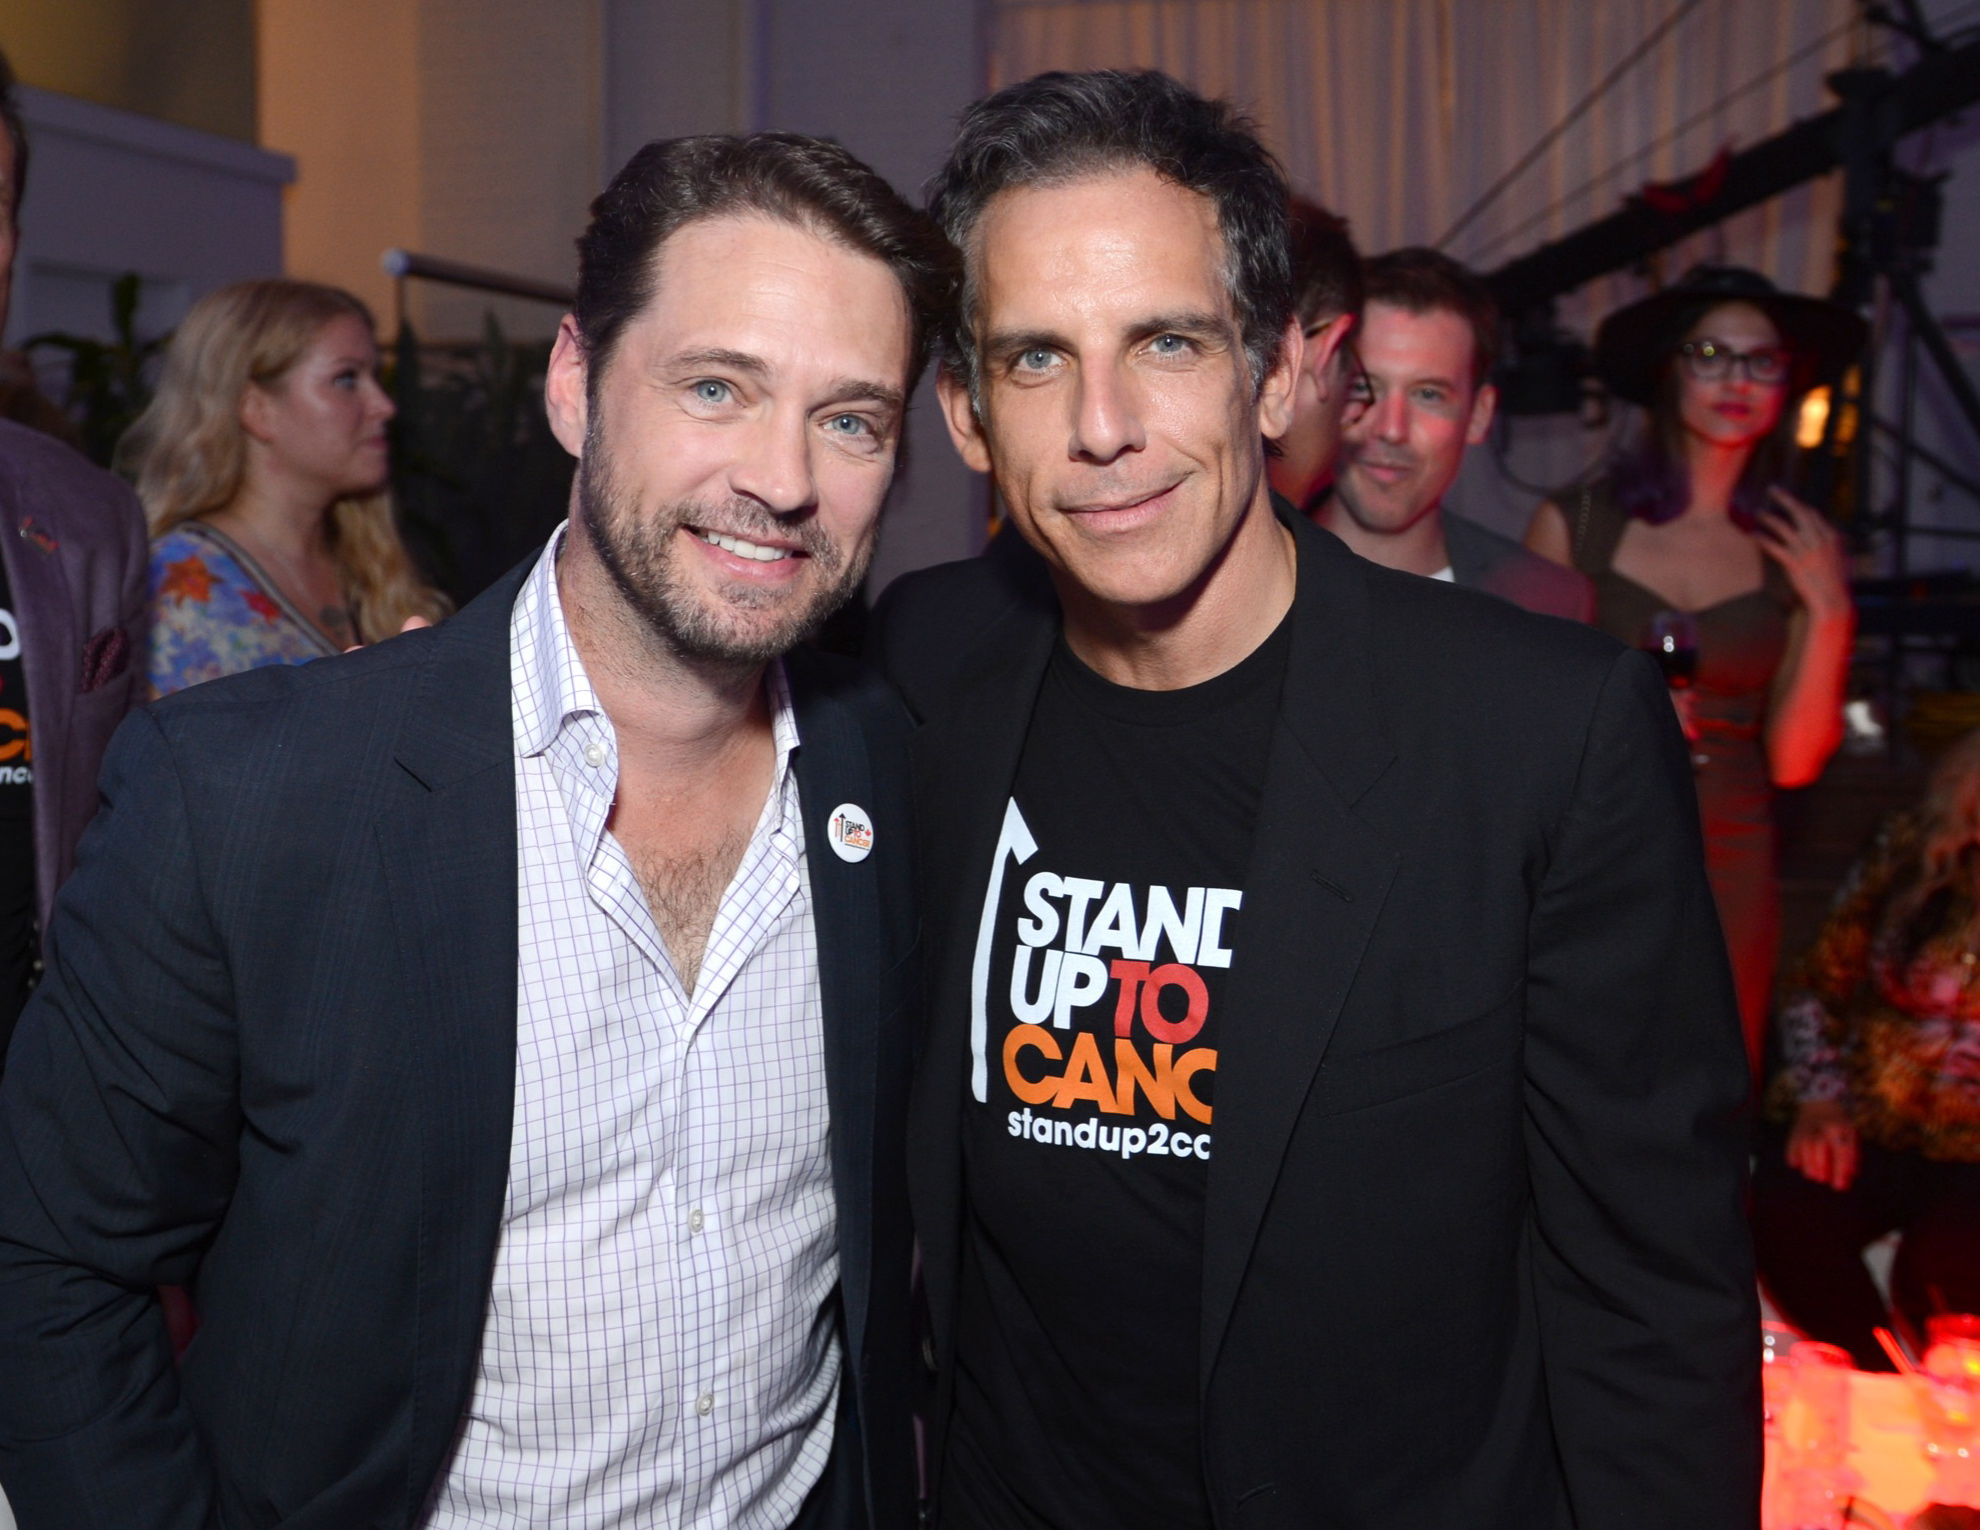 Red Carpet Report: Celebrities Stand Up 2 Cancer